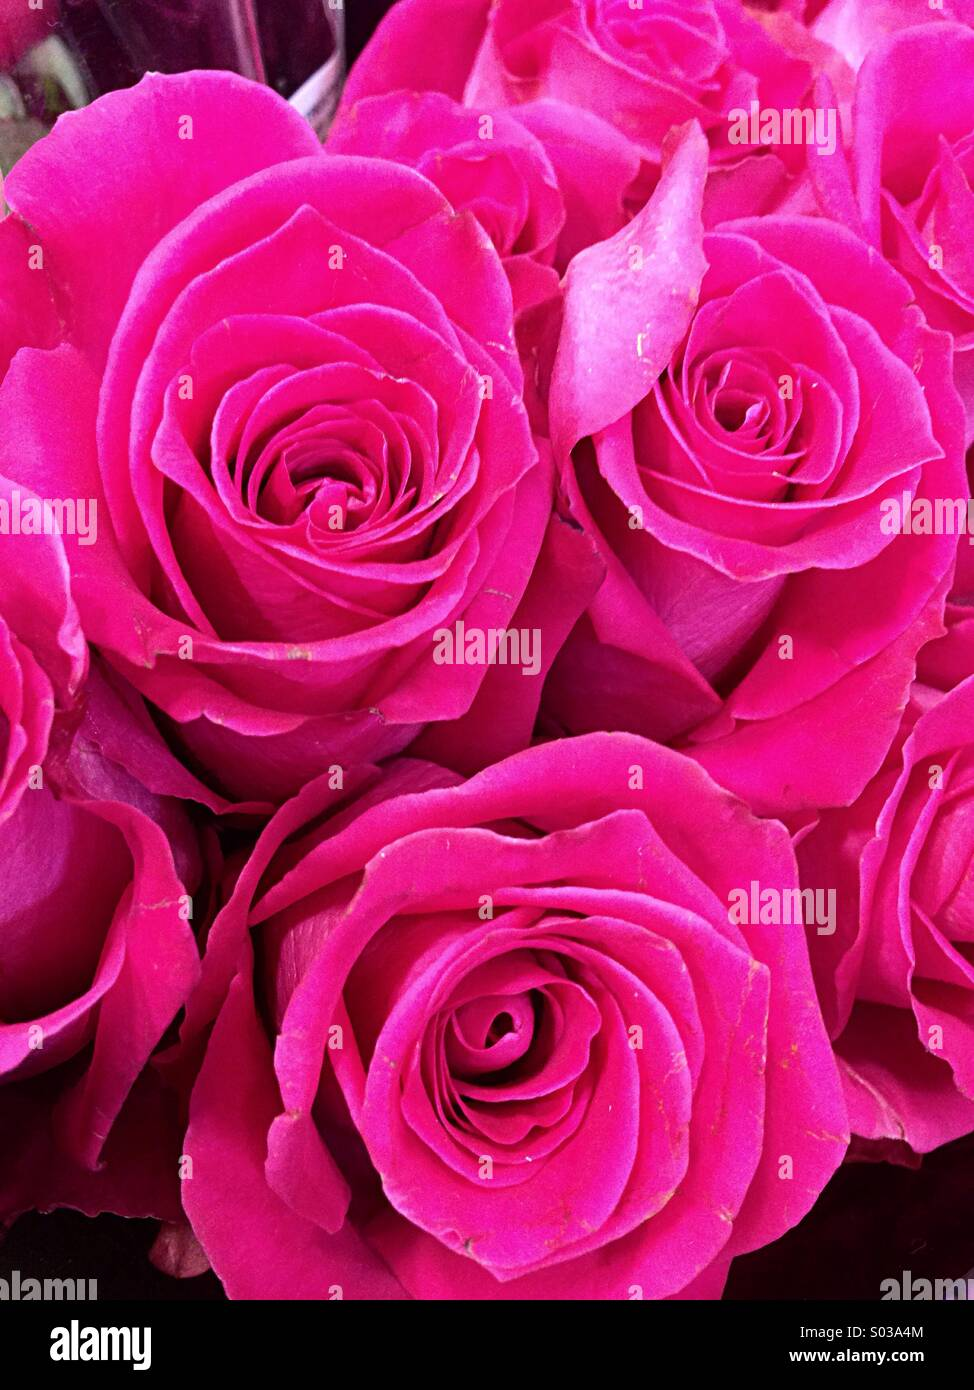 Bunch Of Pink Roses Stock Photos Bunch Of Pink Roses Stock Images